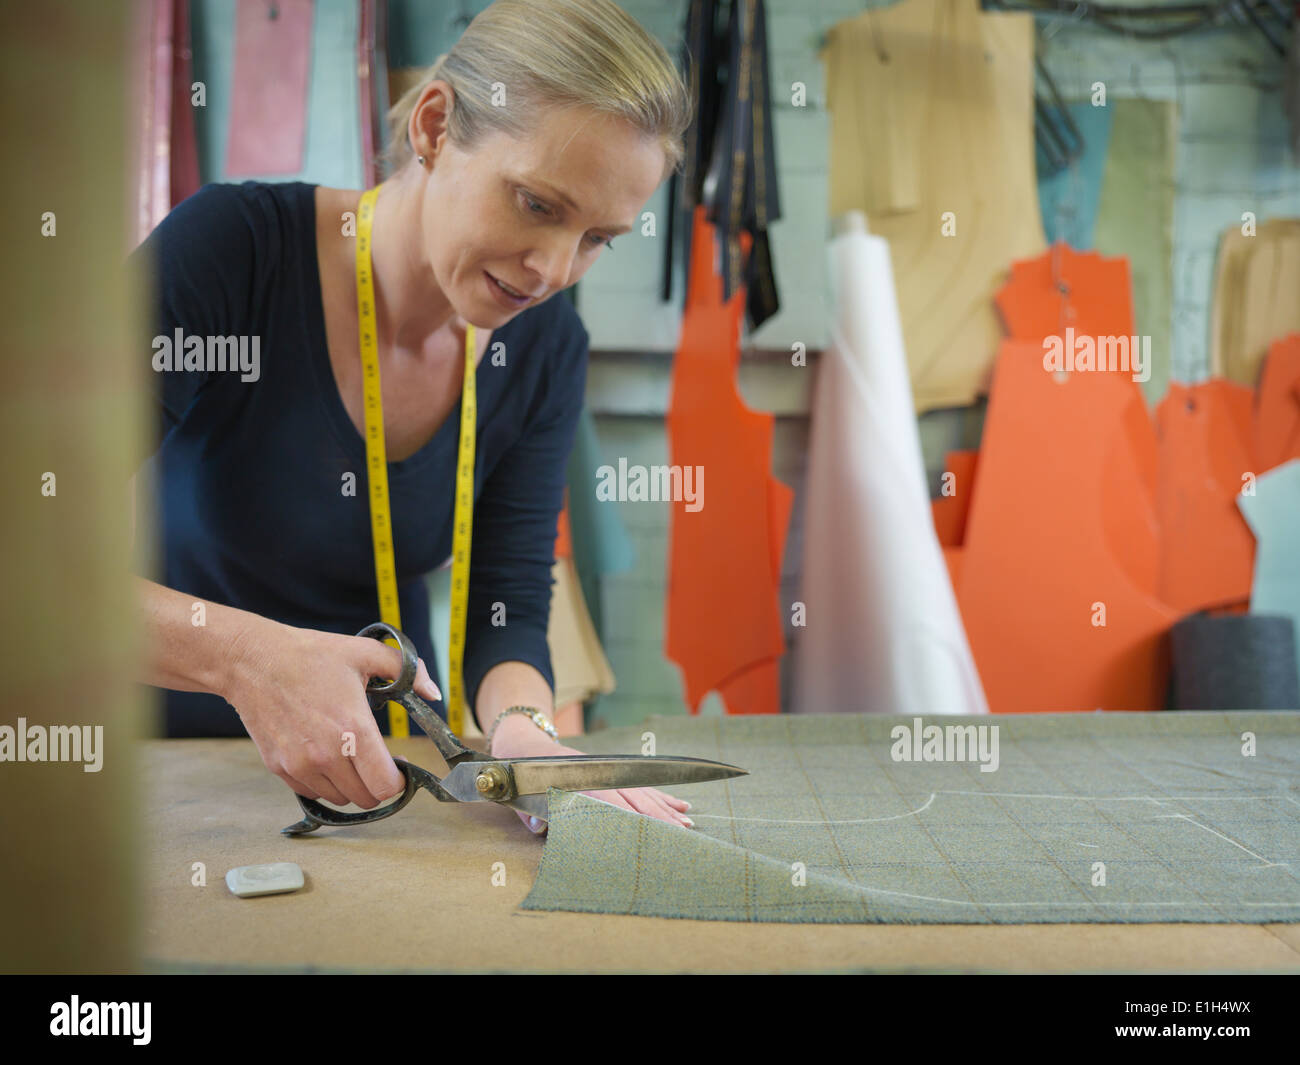 Female worker cutting cloth in garment factory - Stock Image